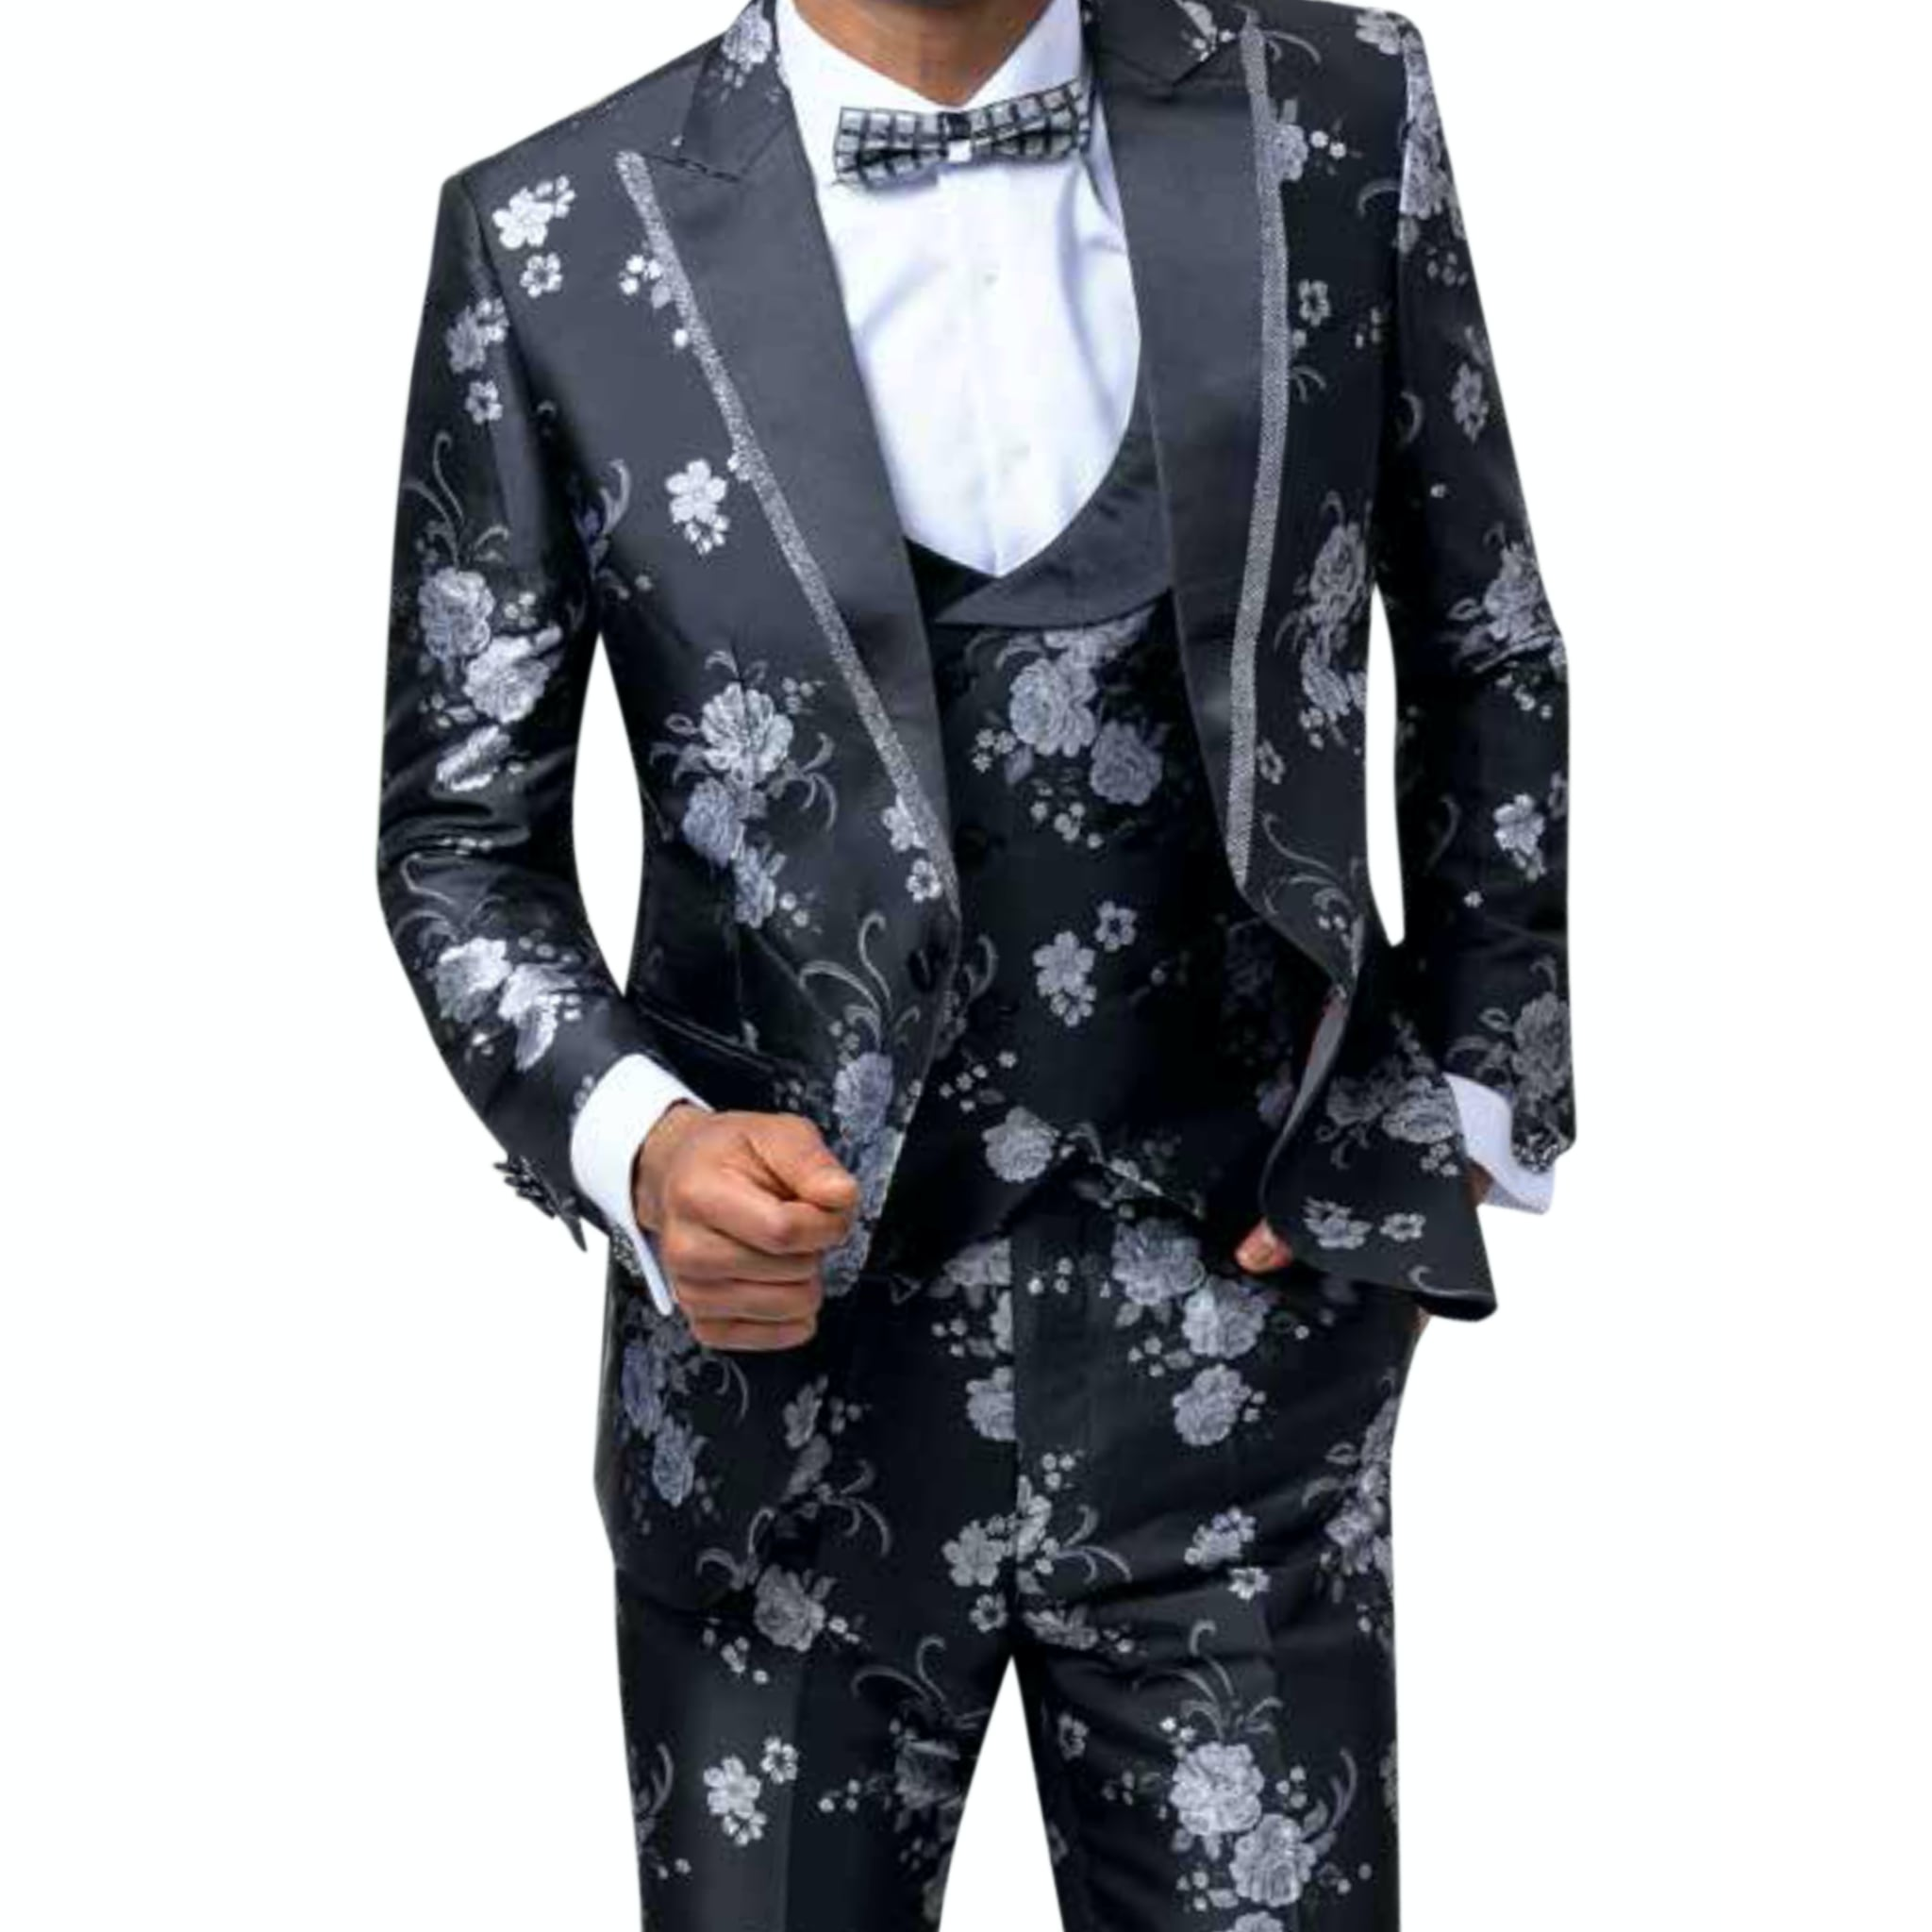 Silver and Black Floral Tuxedo With Vest and Bowtie